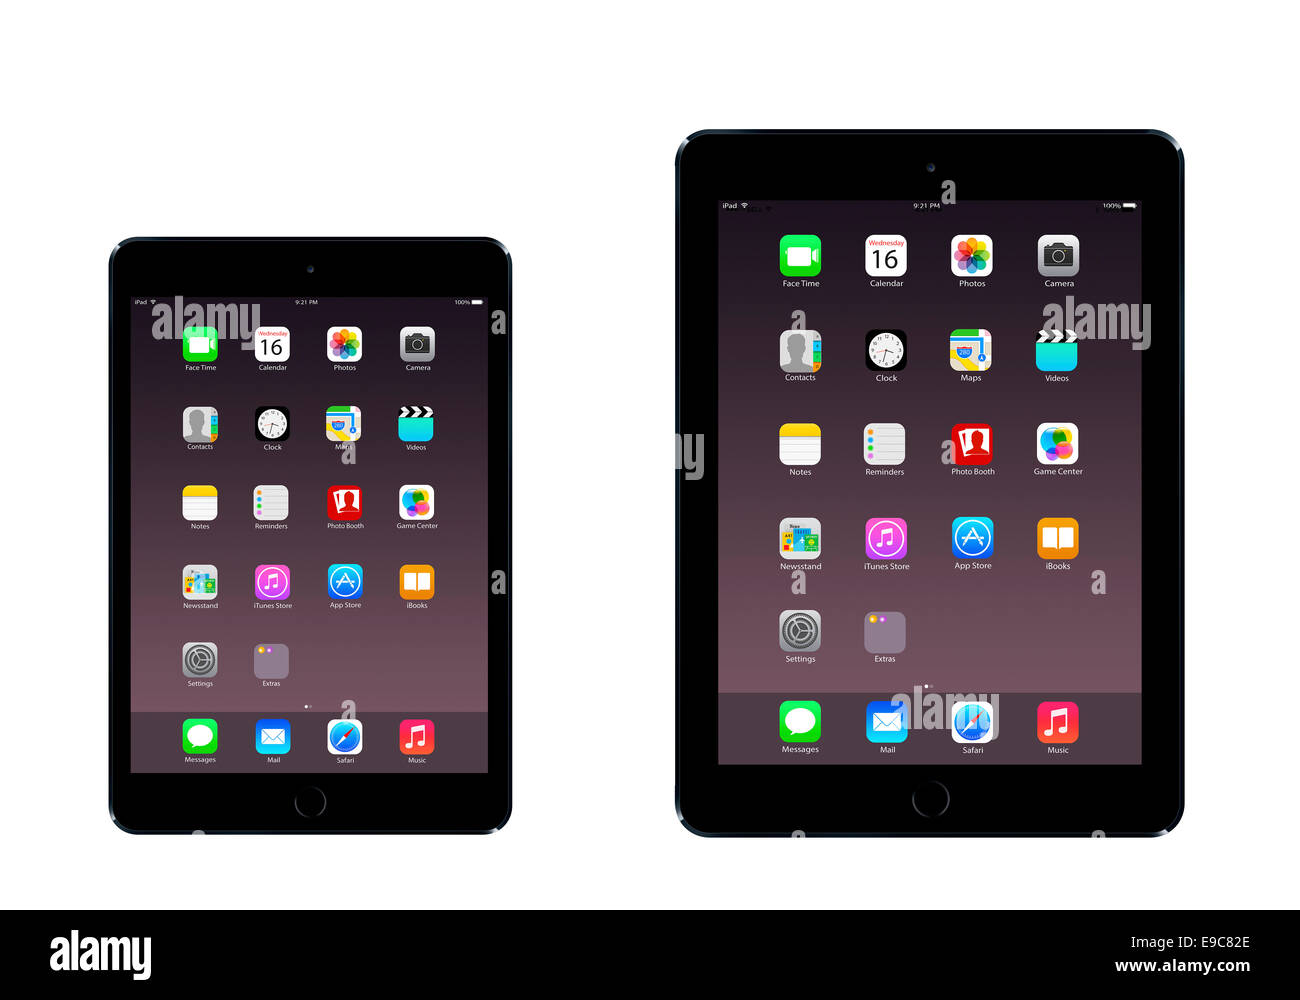 Tablets iPad mini 3 iPad air 2 (space gray)  with apps, digitally generated artwork. - Stock Image